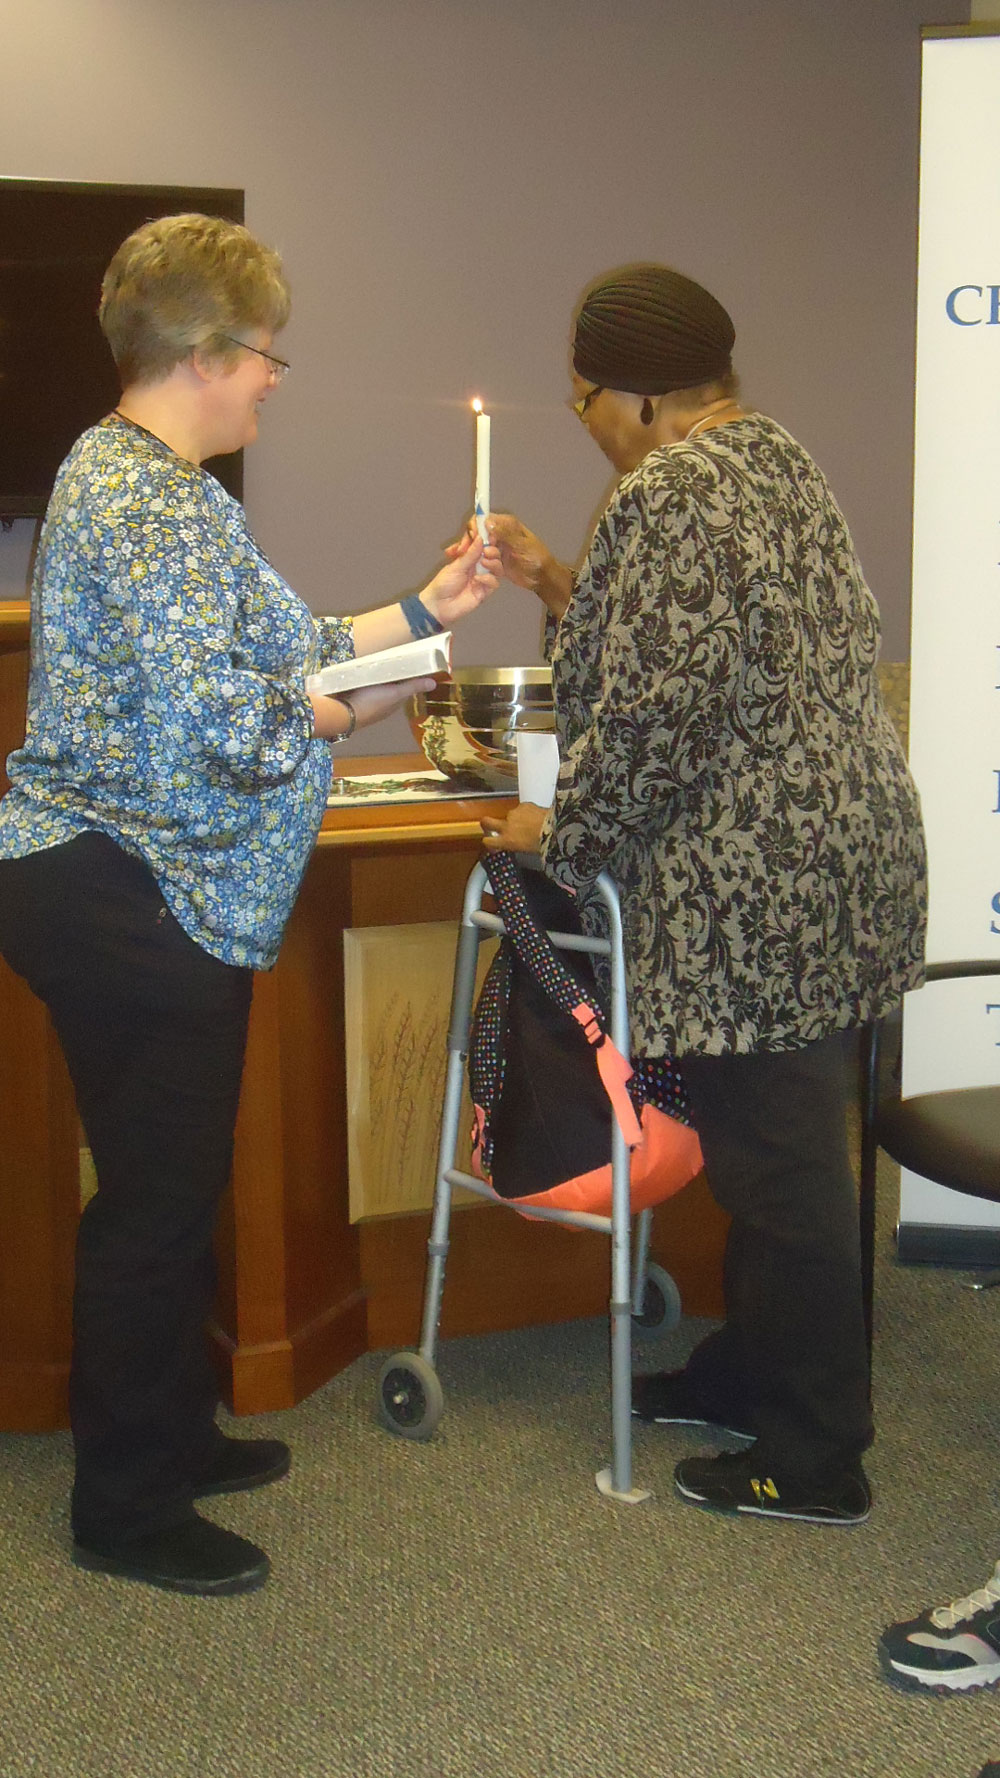 Immanuel Pathways in Omaha baptizes one of their participants at the center